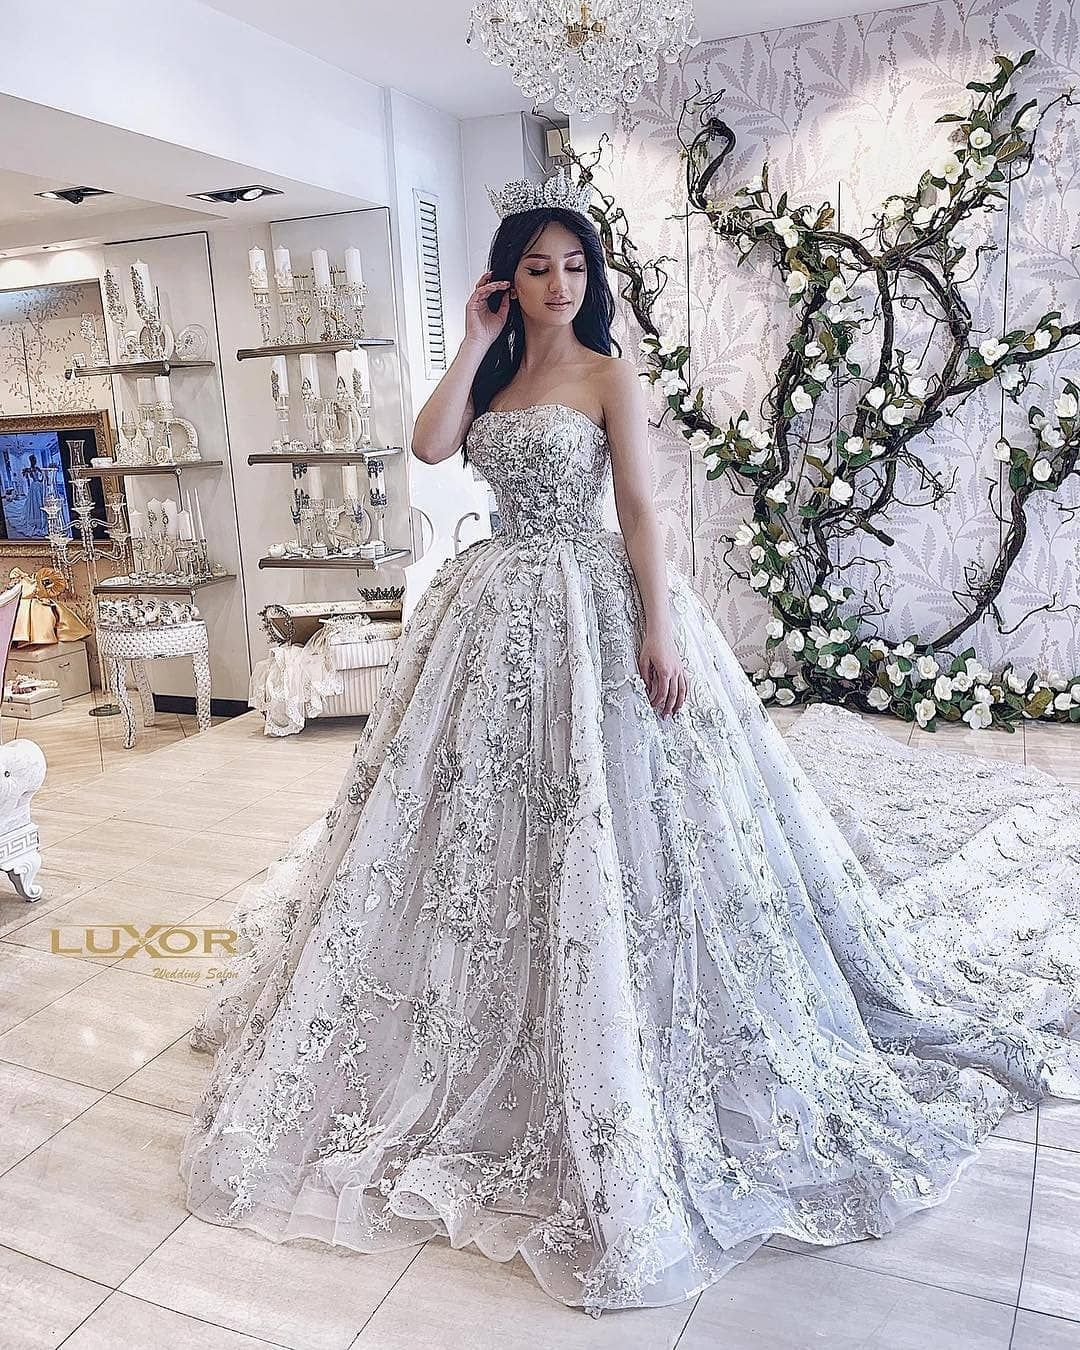 Dress Up On Instagram 1 2 3 4 5 6 7 8 9 Or 10 Follow Us Nihiean For Promotion For Selling Dress Nihiean Ball Gowns Wedding Wedding Dresses Gowns